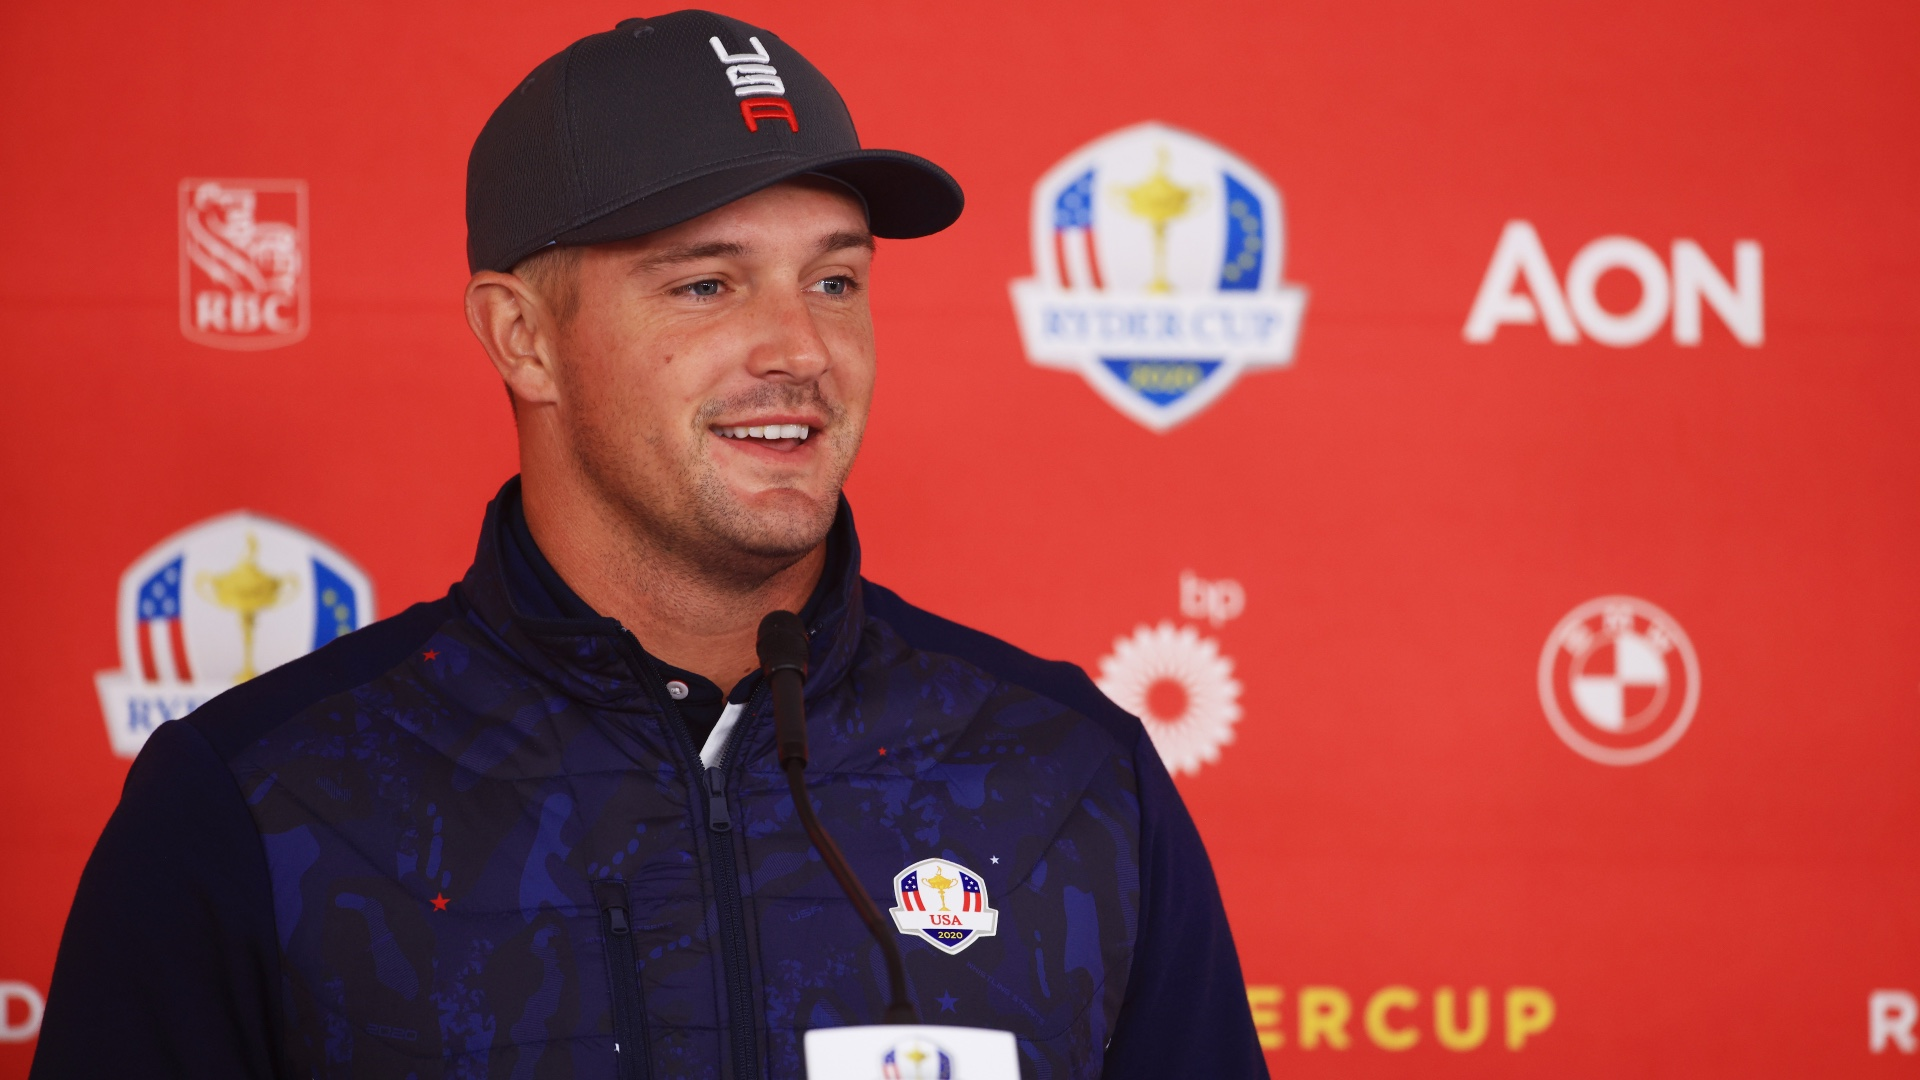 Bryson DeChambeau's Ryder Cup record: How Team USA looks to avoid repeat of 2018 disaster